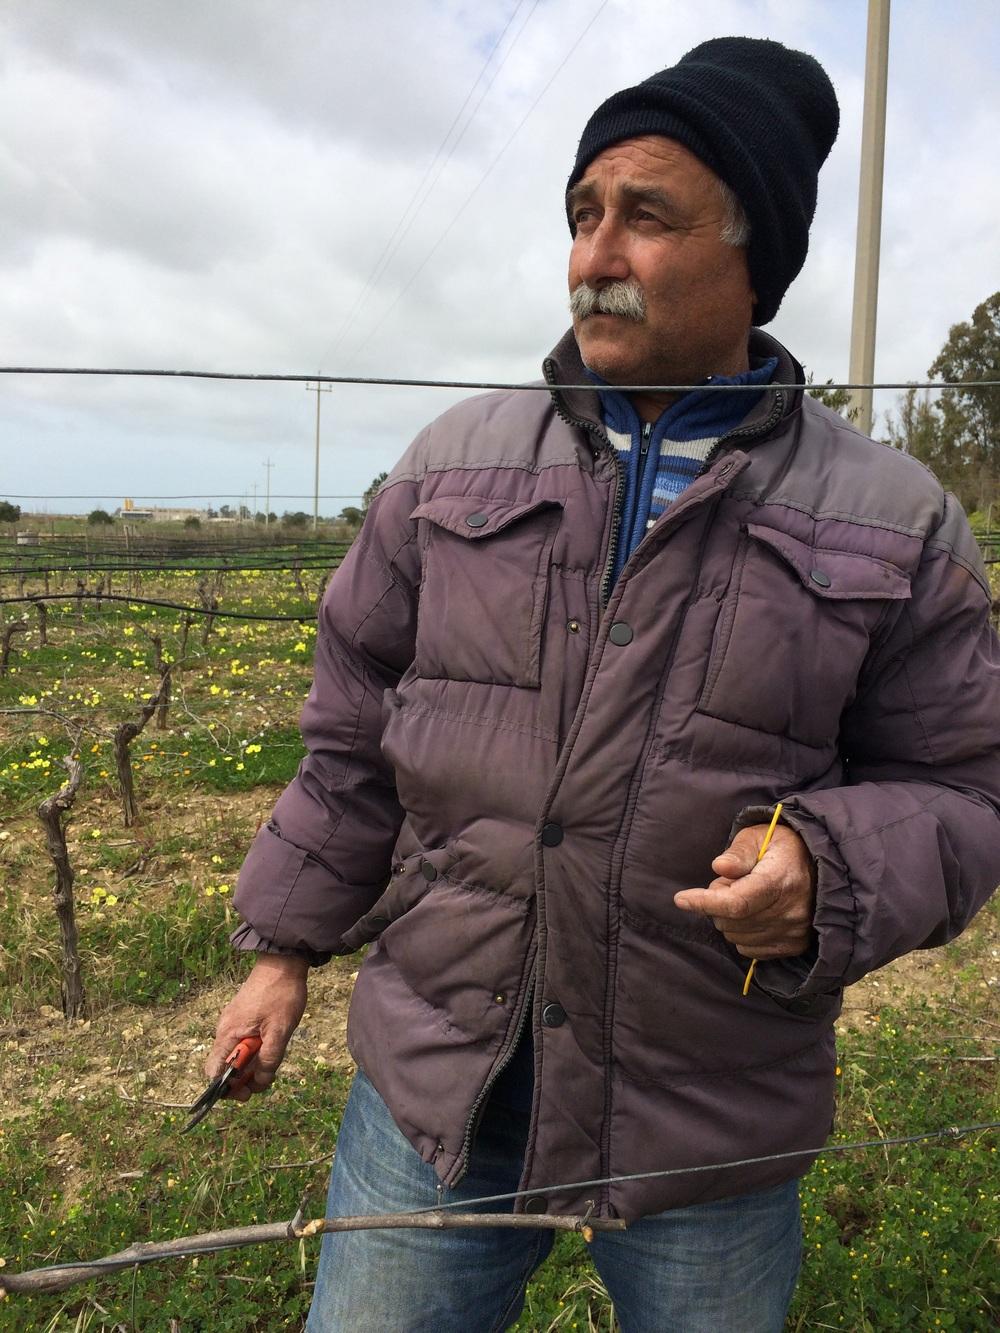 Vincenzo pruning his vines near Campobello di Mazara, Sicilia